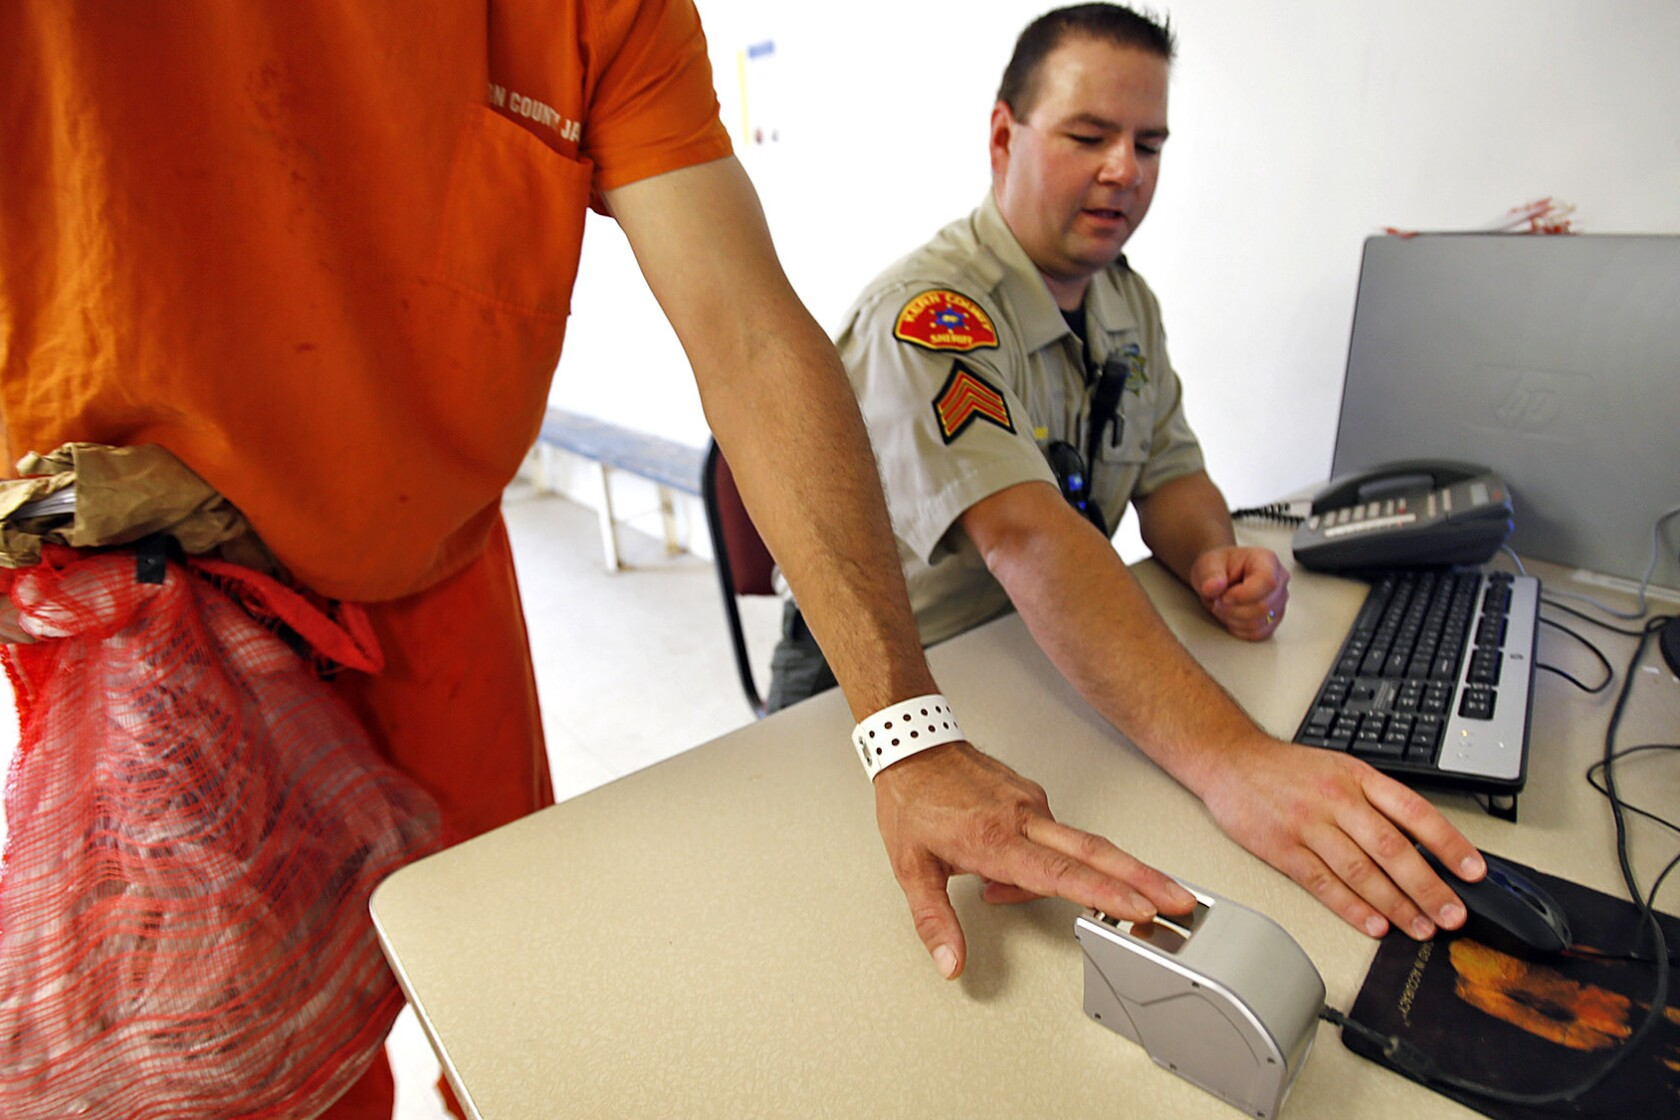 Early jail releases have surged since California's prison